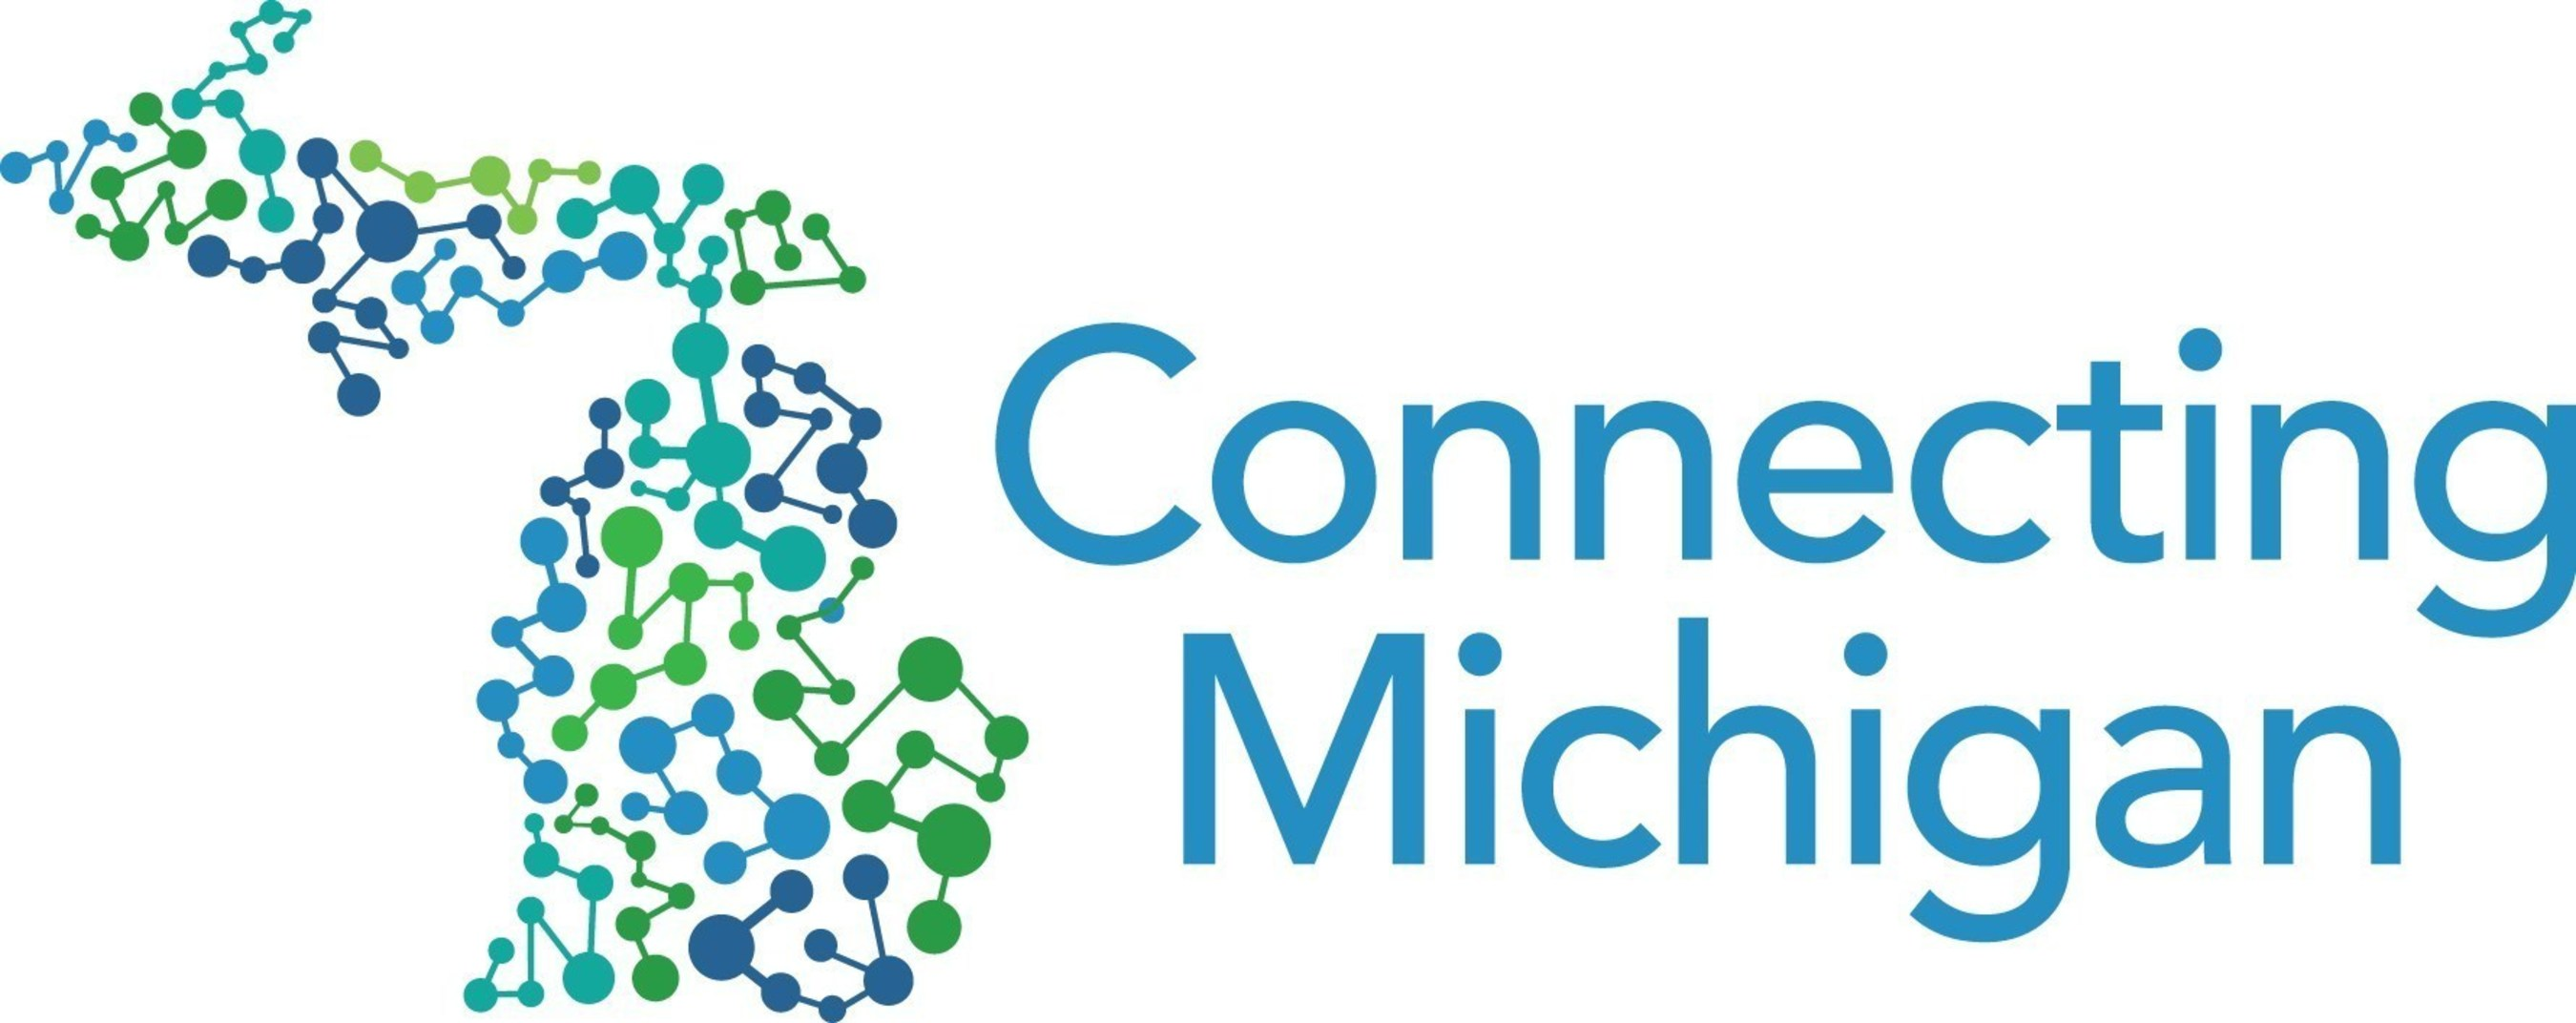 Connecting Michigan for Health will be held June 8-10, 2016 at the Lansing Center in Lansing, Michigan.